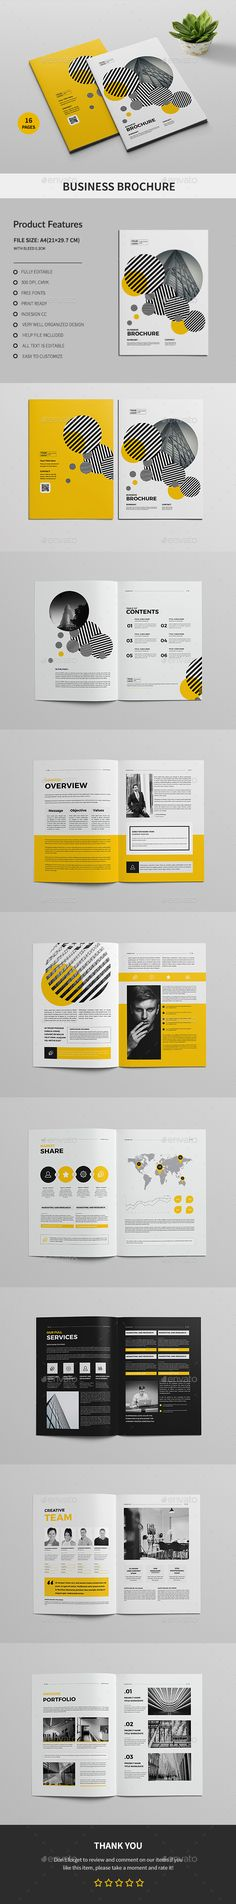 ِA4 Business Brochure — InDesign INDD #a4 #products • Download ➝ https://graphicriver.net/item/a4-business-brochure/19998837?ref=pxcr